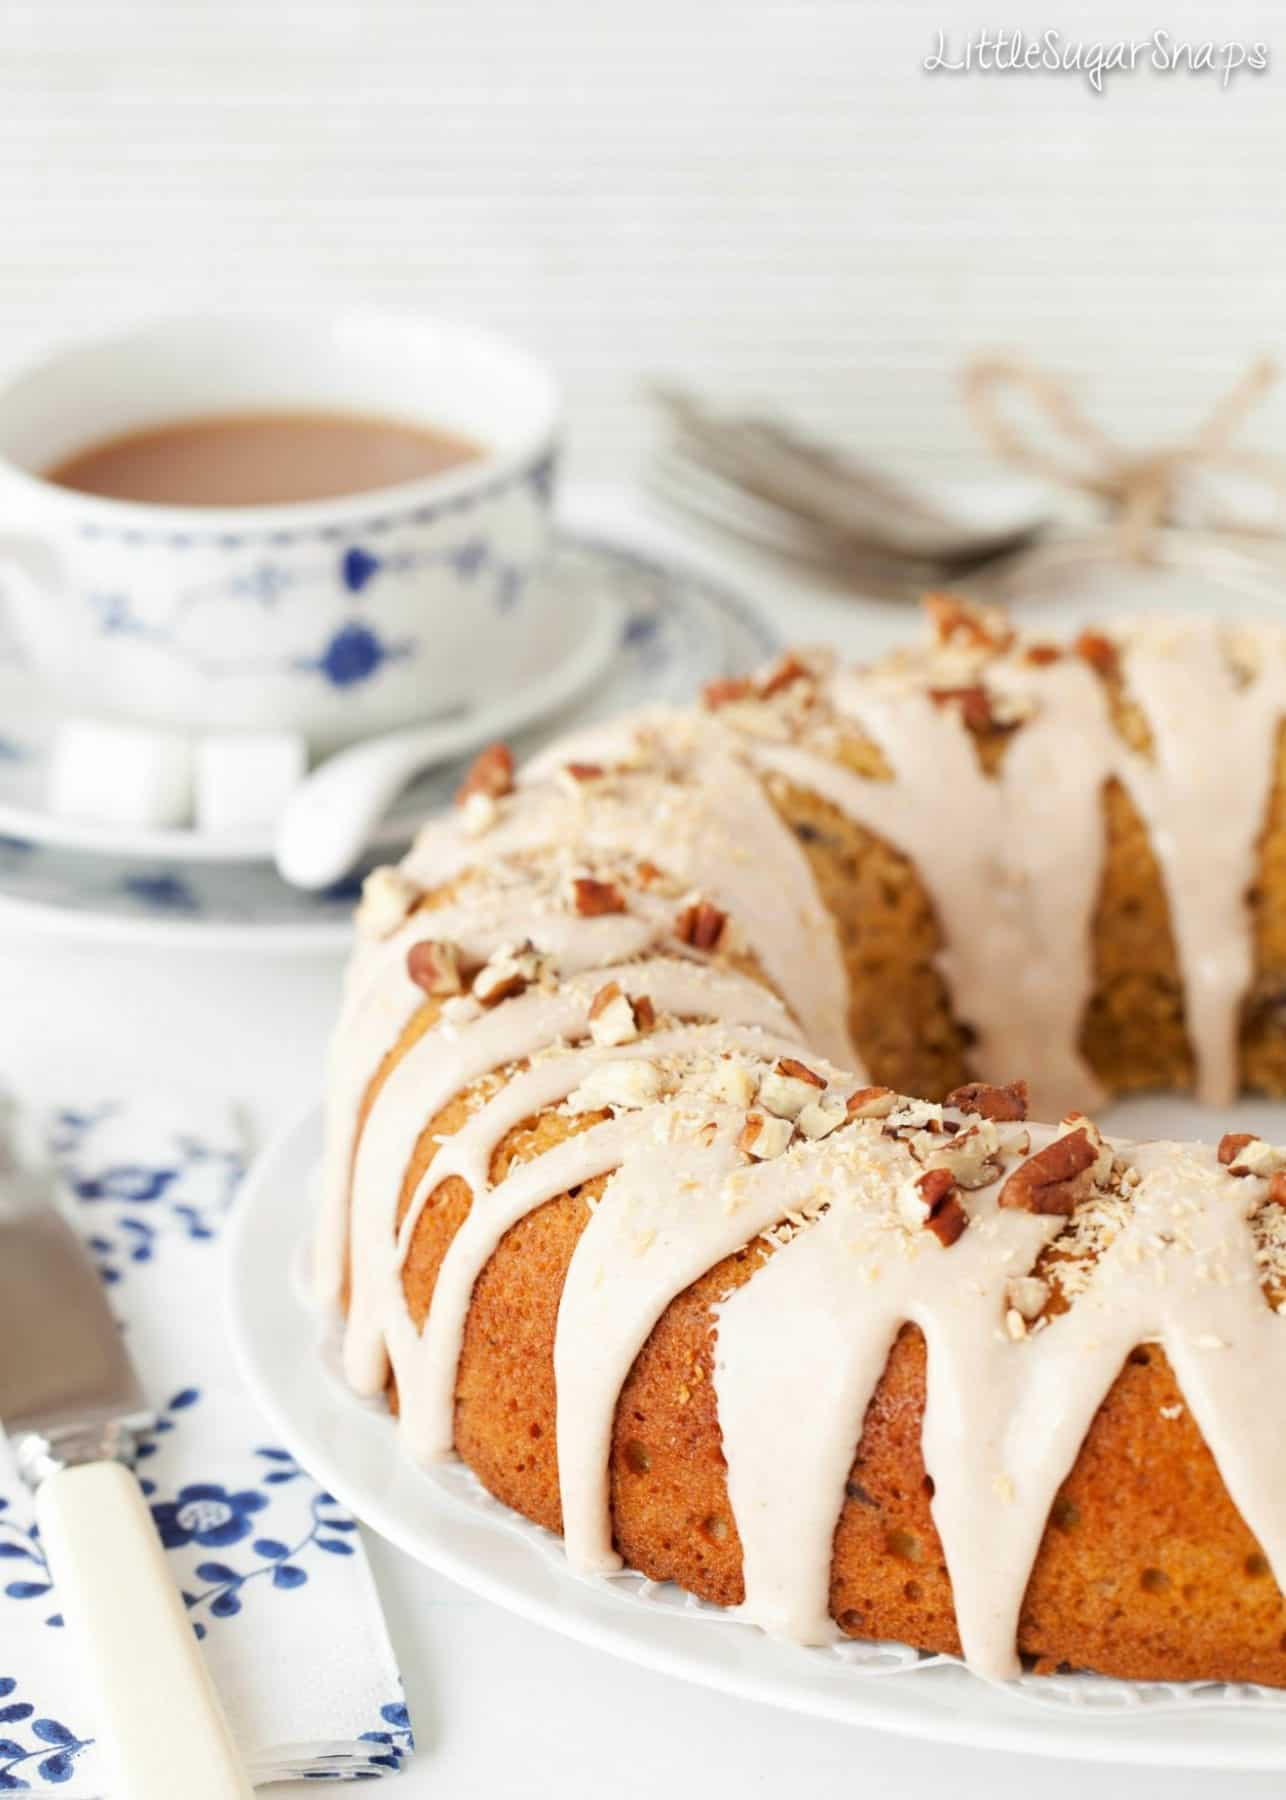 What Cake Goes With Pumpkin Spice Icing